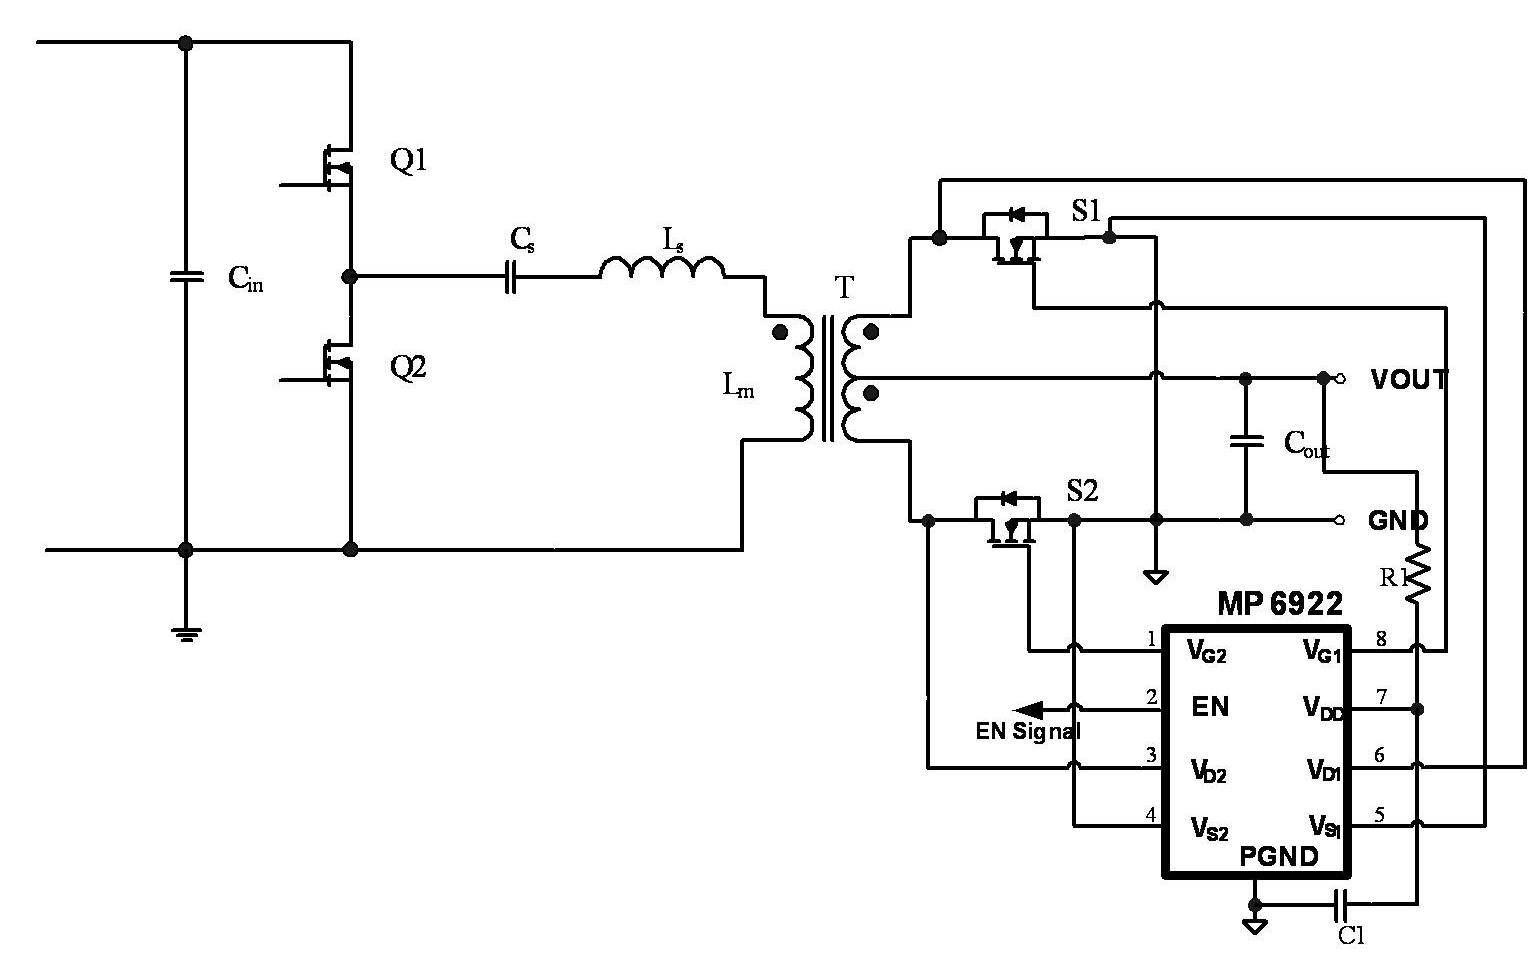 Https En Products Ac Dc Power Contactless Mains Voltage Detector Circuit Diagram Mp6922 Conversion Typical Application 1